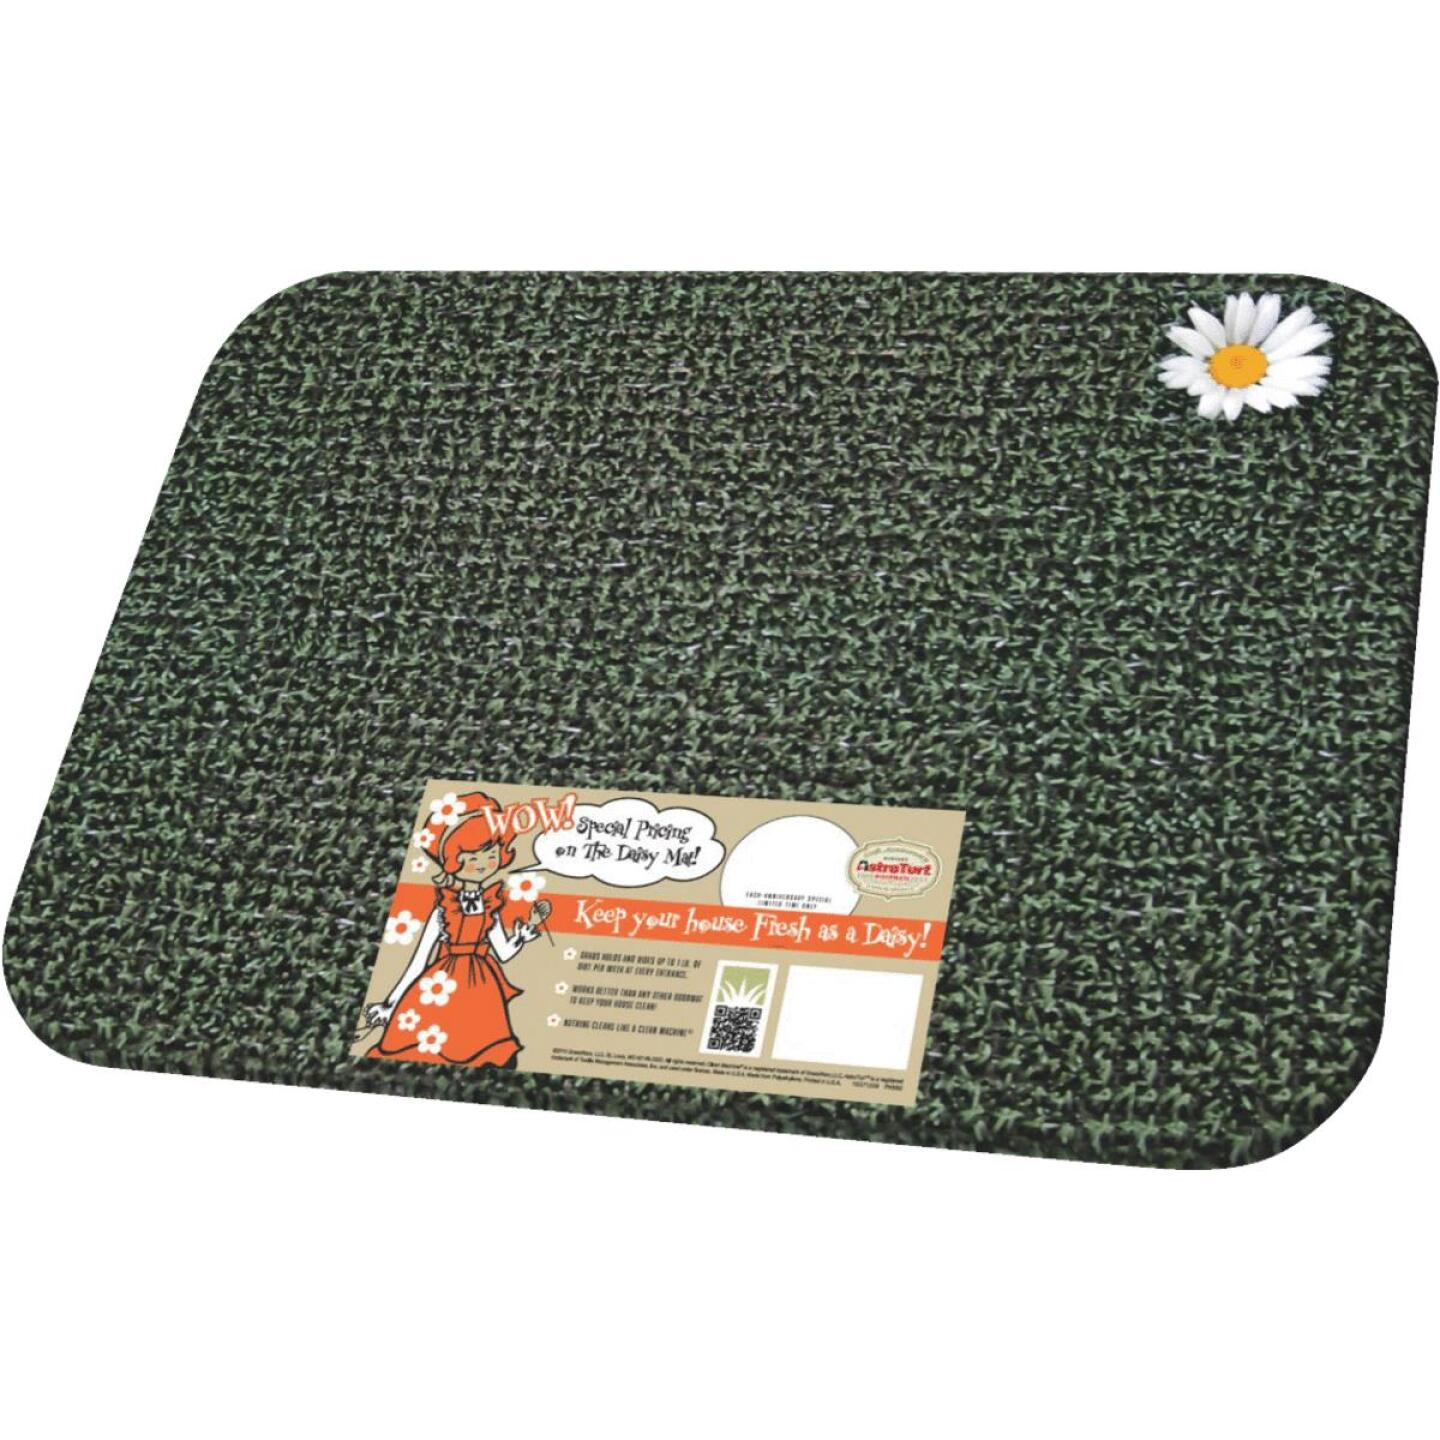 GrassWorx Clean Machine Classic Evergreen 17.5 In. x 23.5 In. AstroTurf Door Mat Image 1